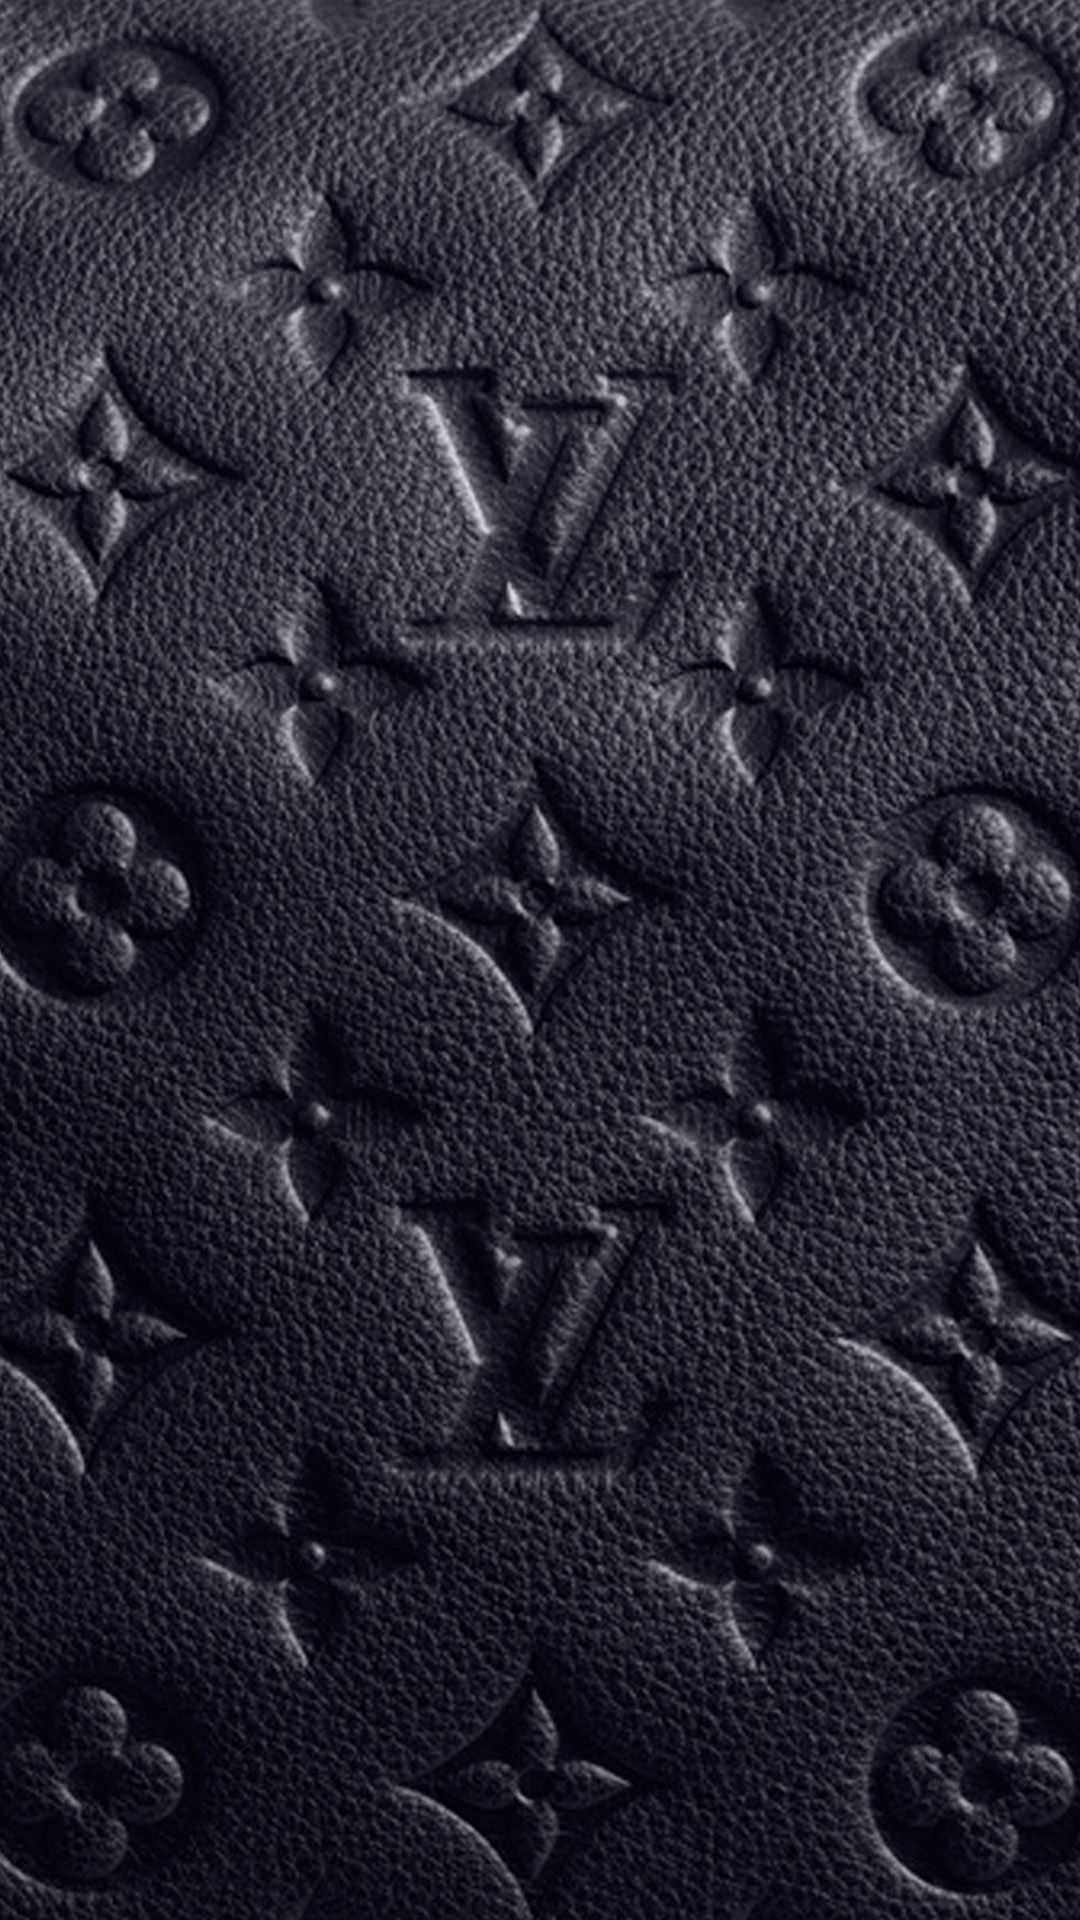 Louis Vuitton Iphone Wallpapers Top Free Louis Vuitton Iphone Backgrounds Wallpaperaccess